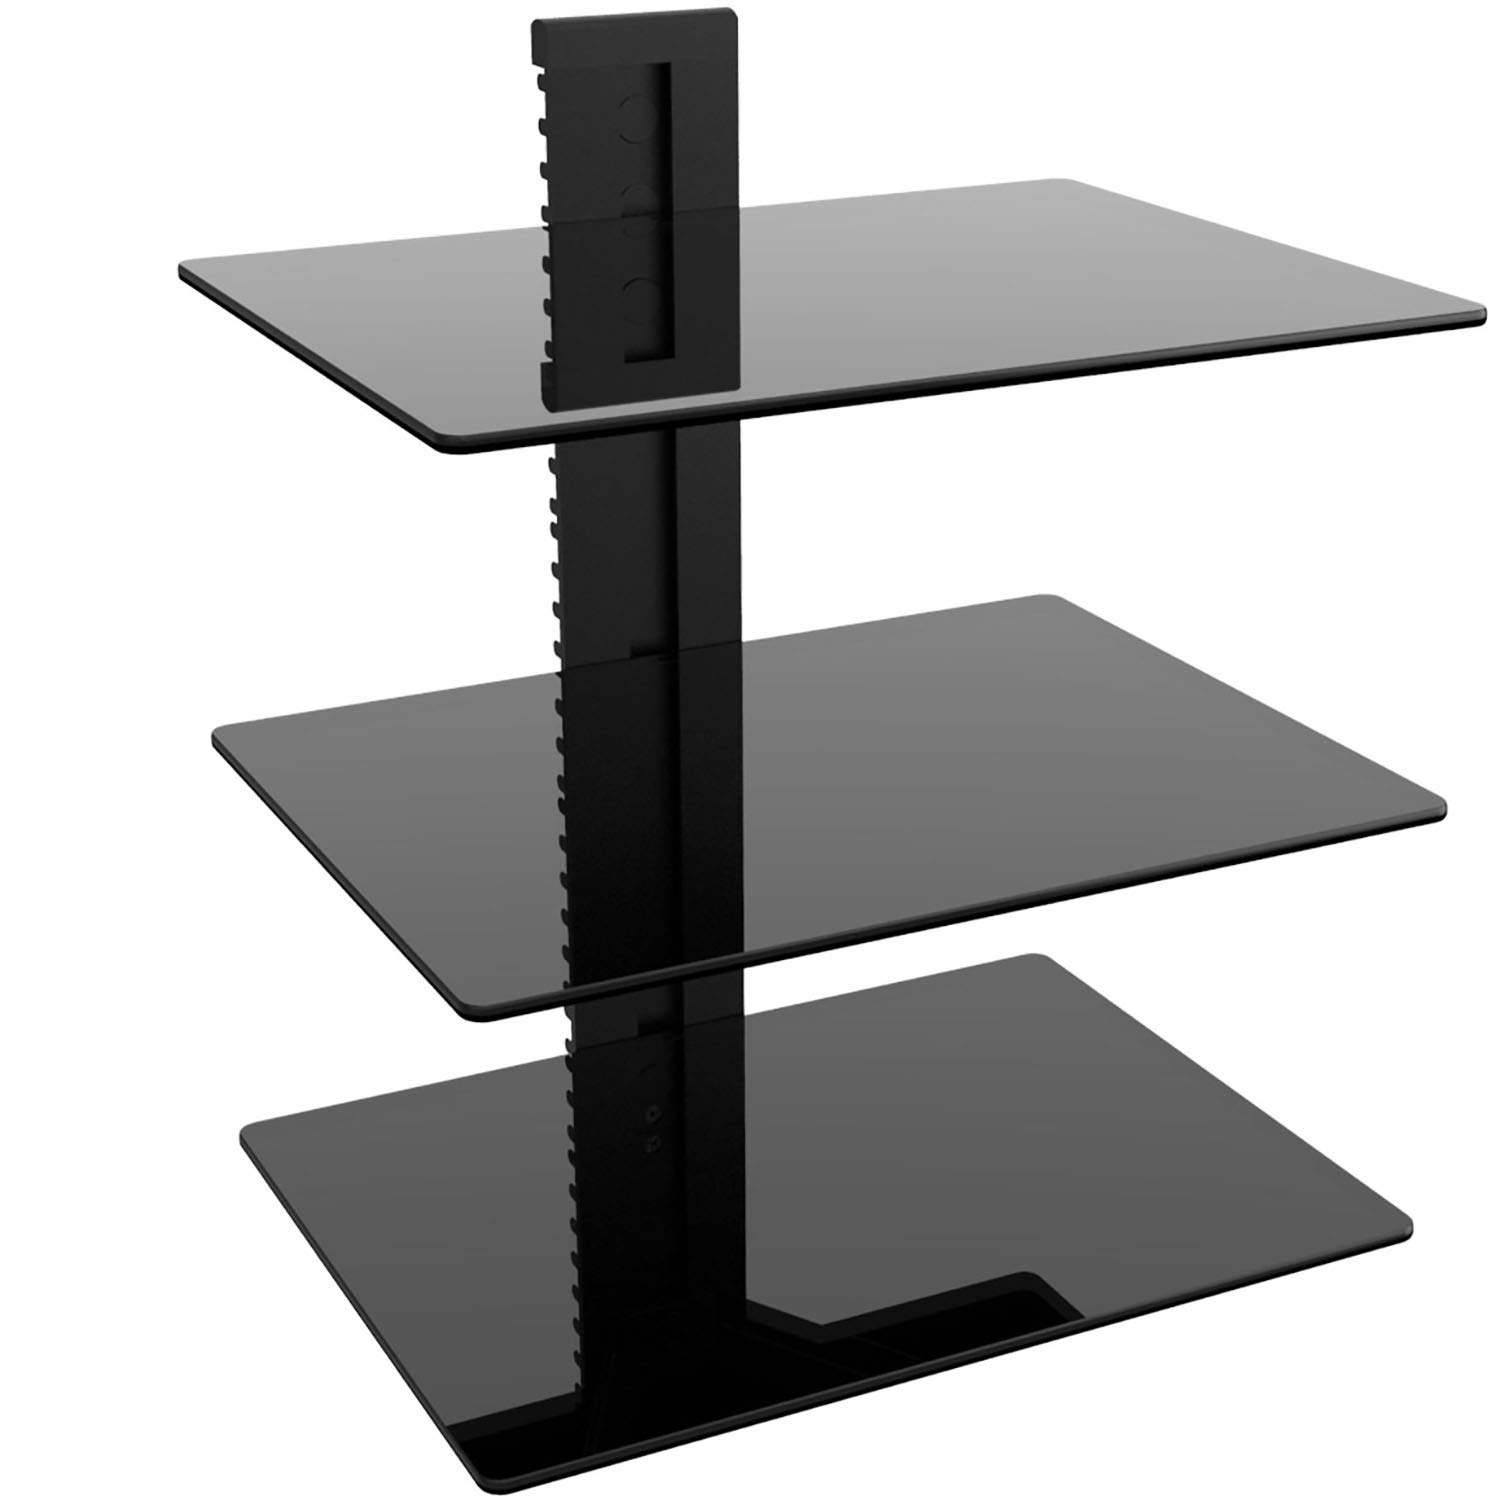 Wali Floating Wall Mounted Shelf With Strengthened Tempered Glasses For Dvd  Players, Cable Boxes, Games Consoles, Tv Accessories (cs303), 3 Shelves,